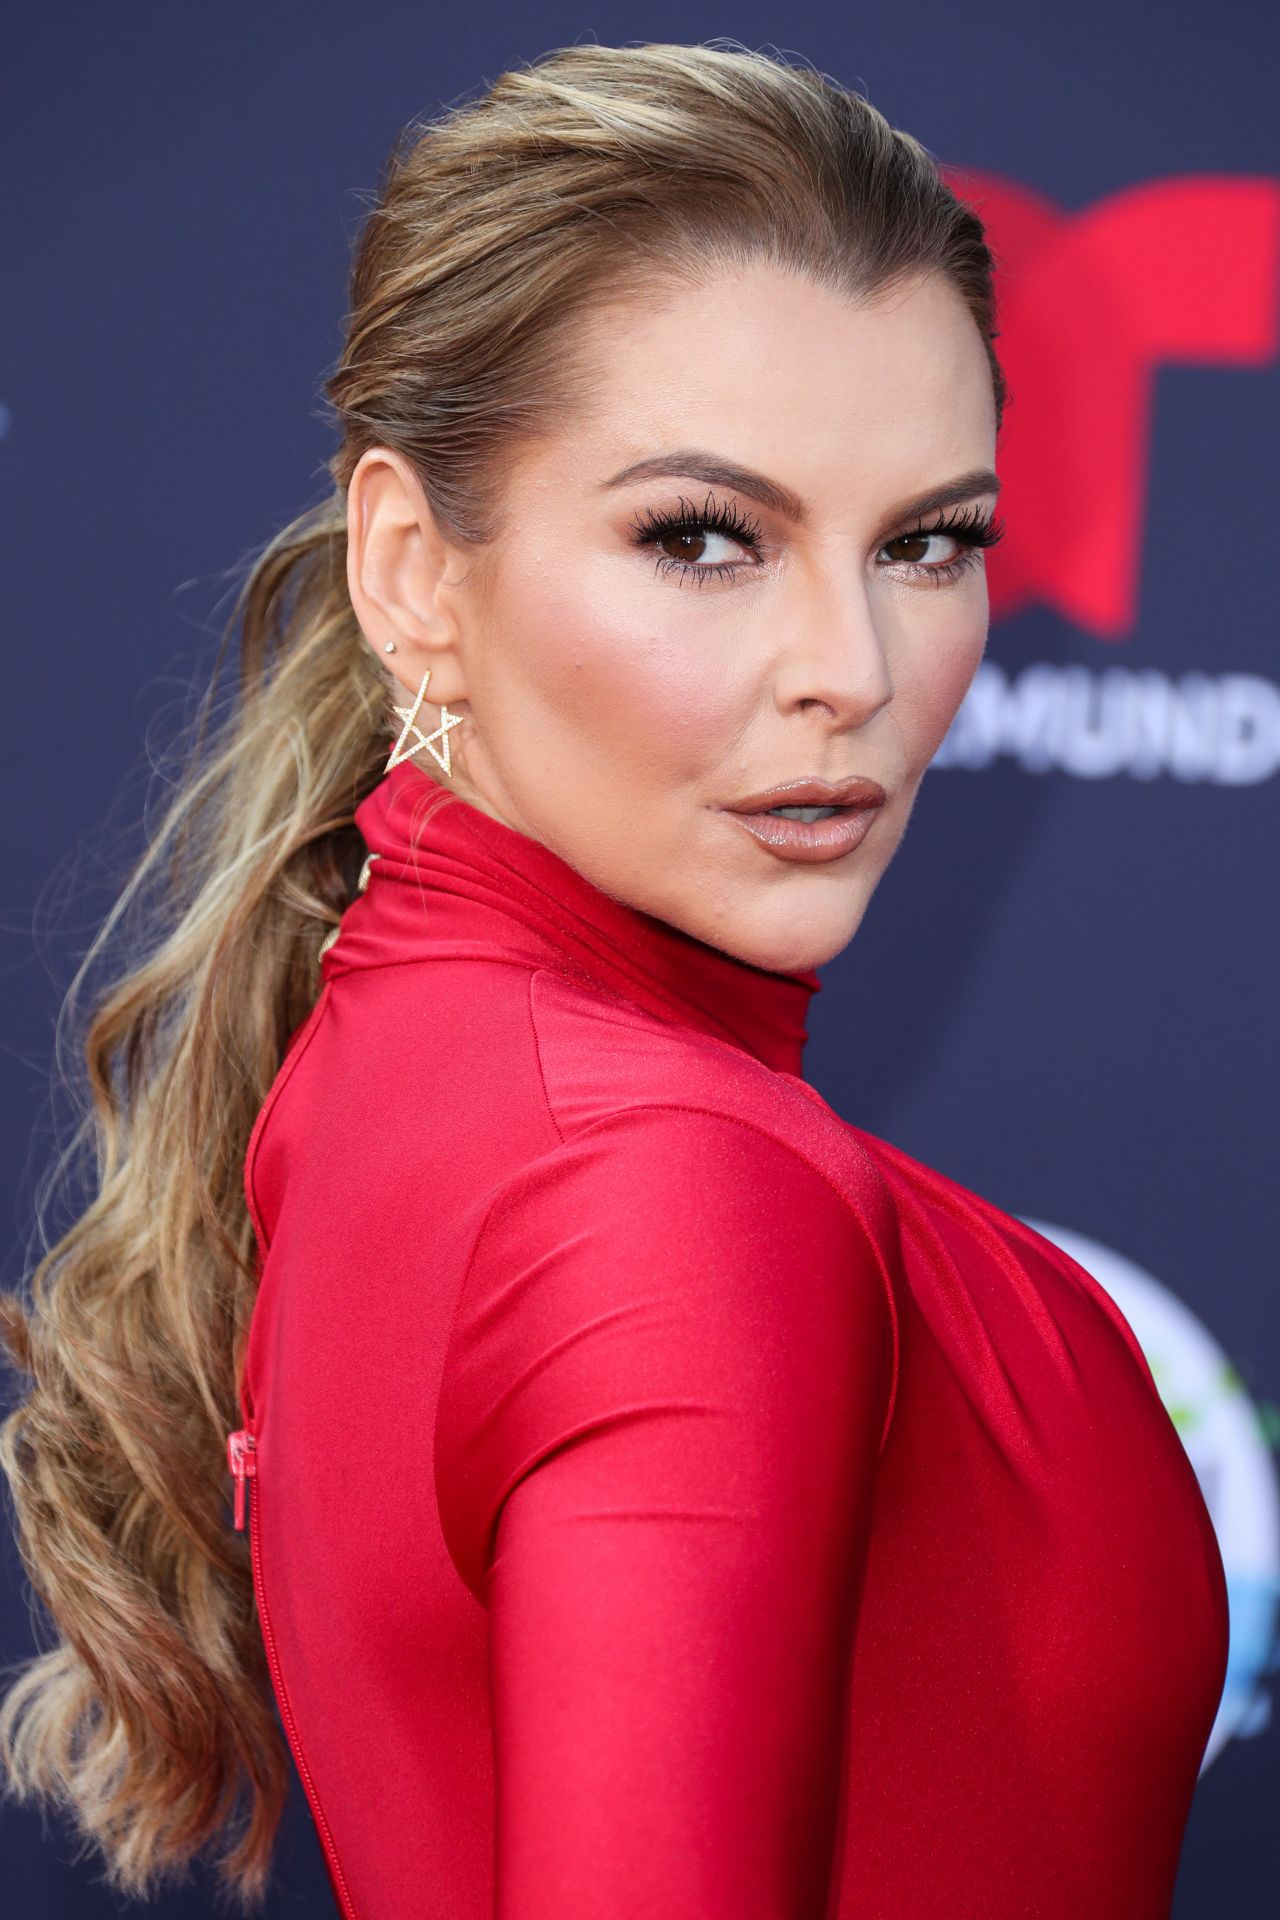 https://celebmafia.com/wp-content/uploads/2018/10/marjorie-de-sousa-2018-latin-american-music-awards-in-hollywood-3.jpg